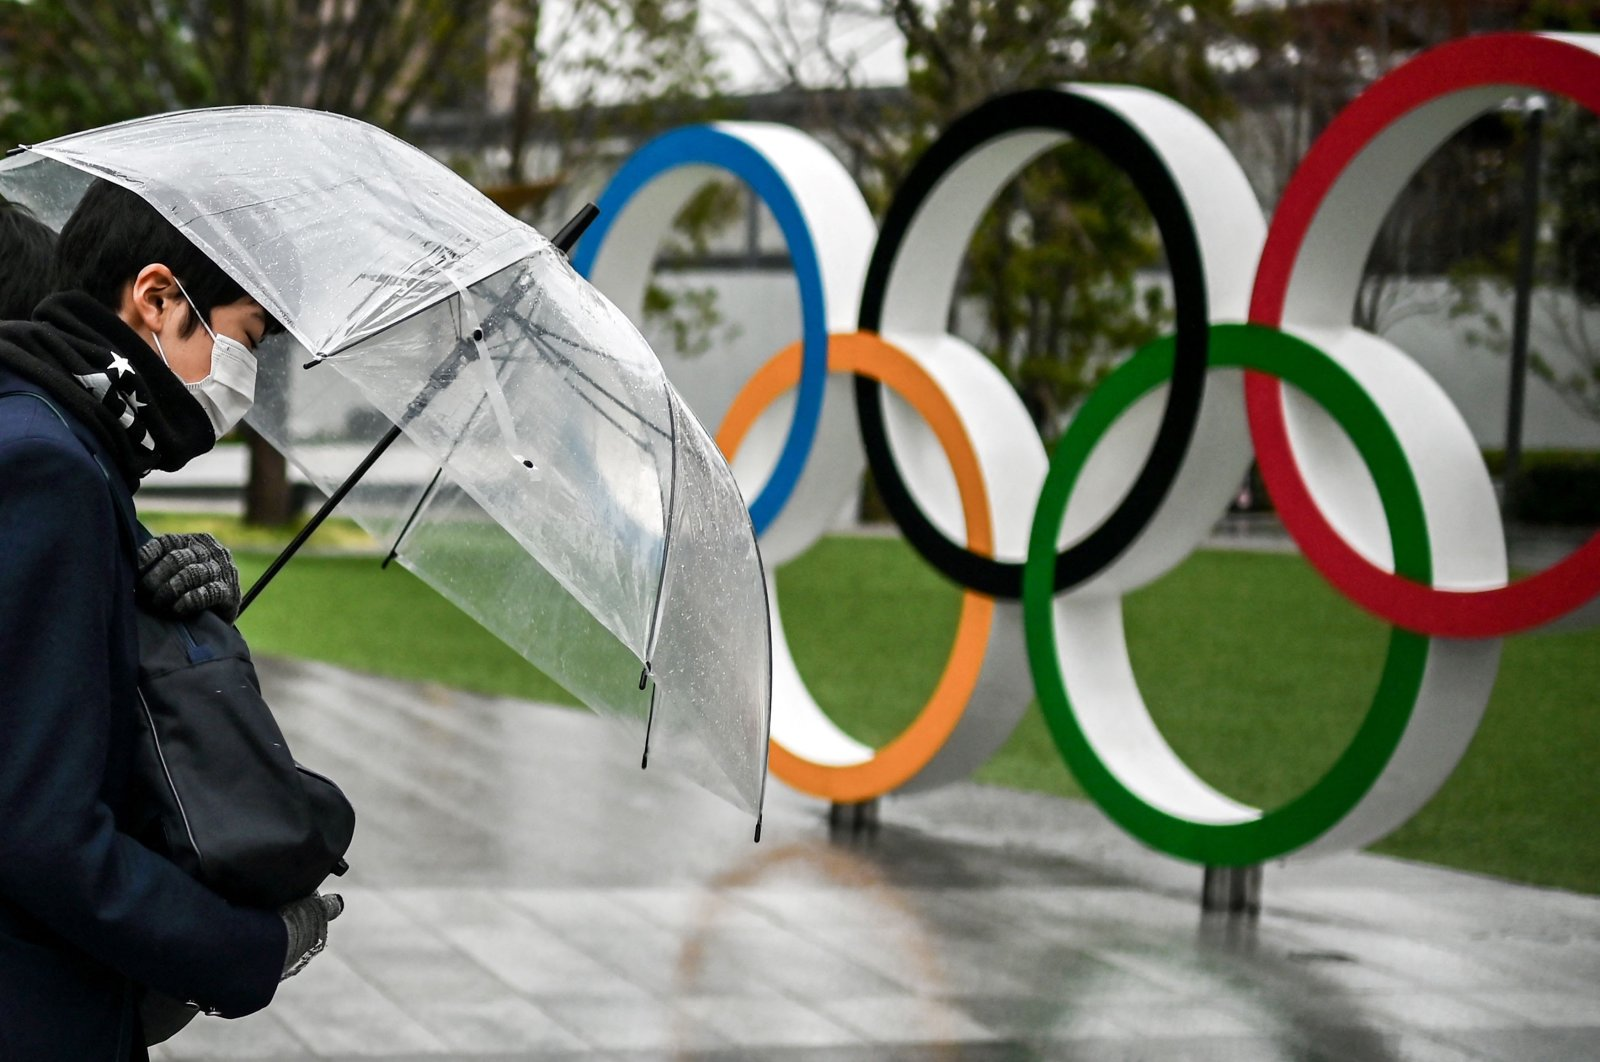 A man walking past the Olympic rings outside the Olympic Museum in Tokyo, Japan, Jan. 28, 2021. (AFP Photo)